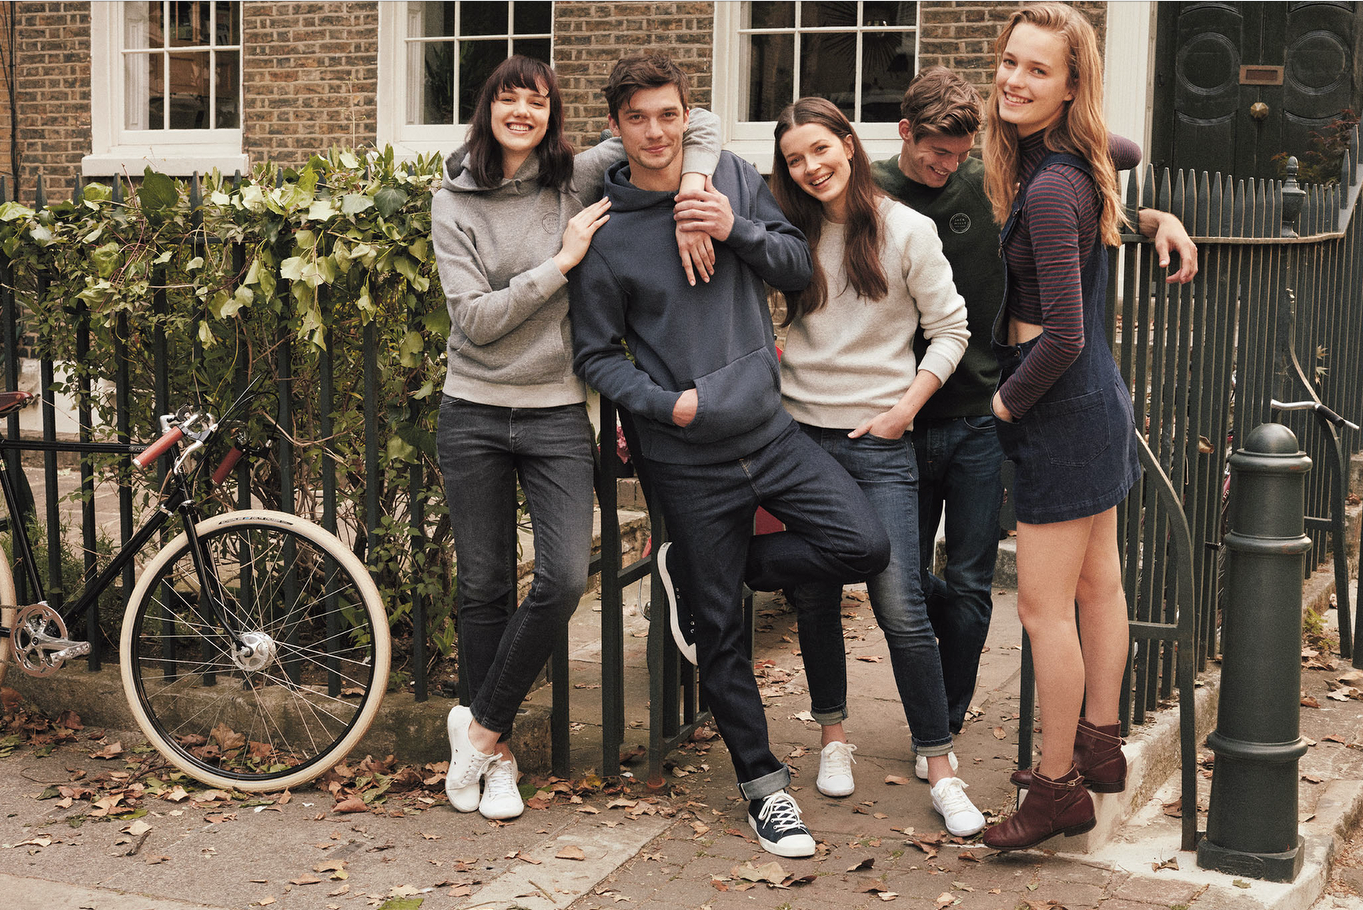 Jack Wills' AW16 collection